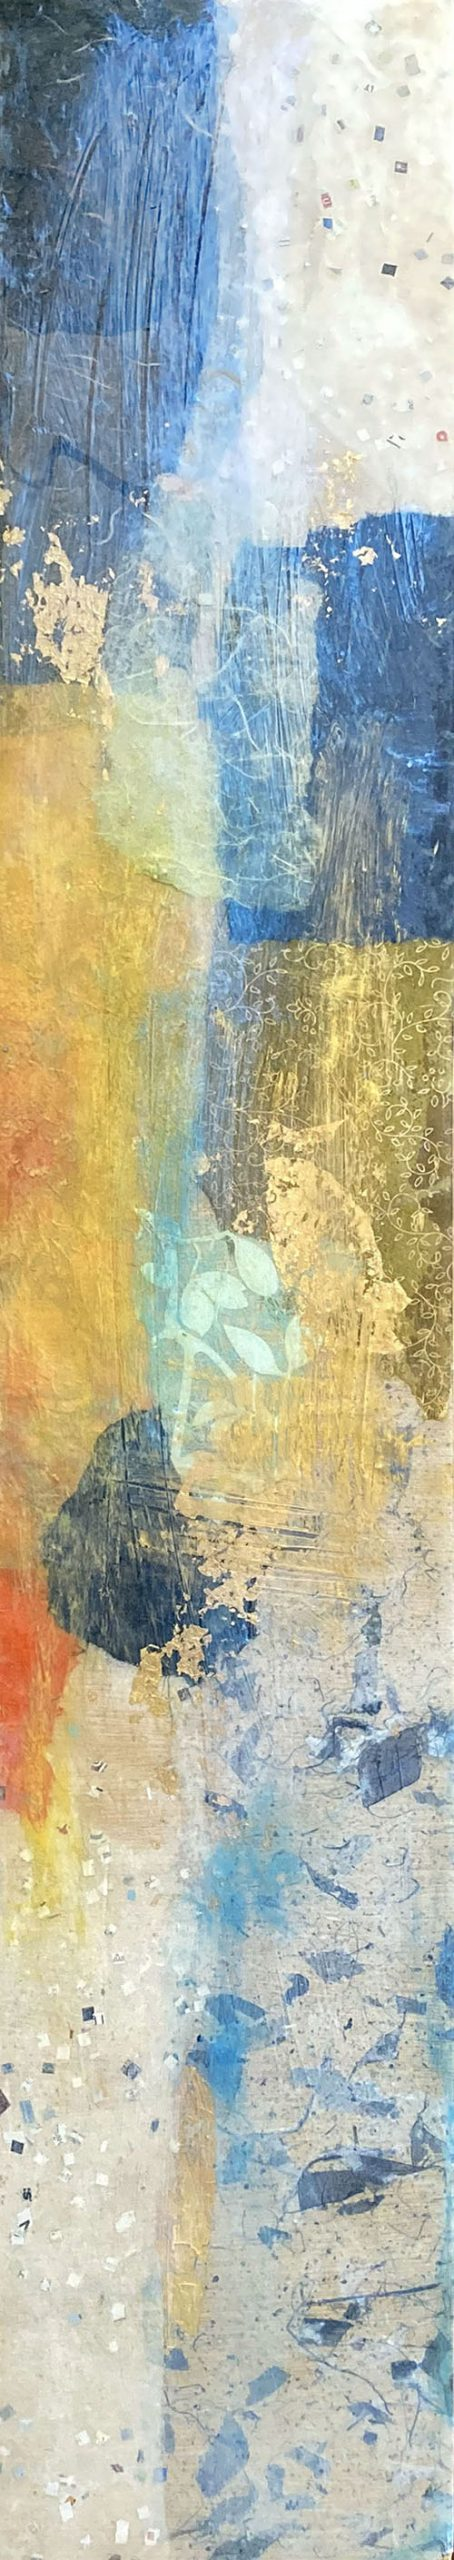 Paul Tiersky mixed media and resin collage with blue and orange